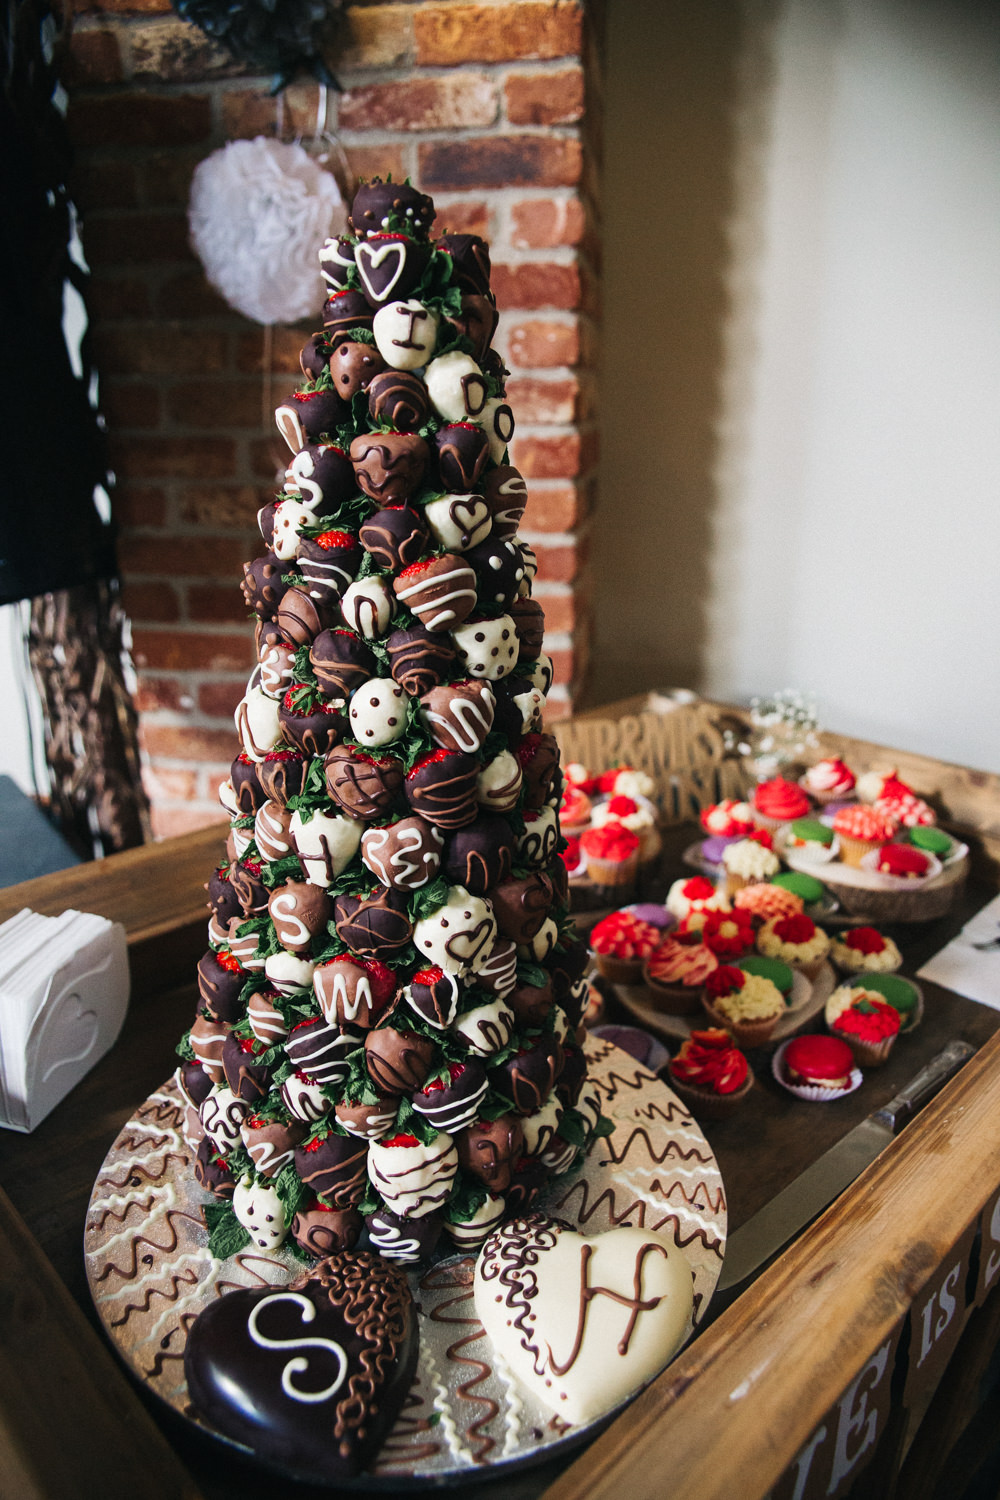 Strawberries Chocolate Tower Cake Wray's Barn Whinstone View Wedding Sally T Photography